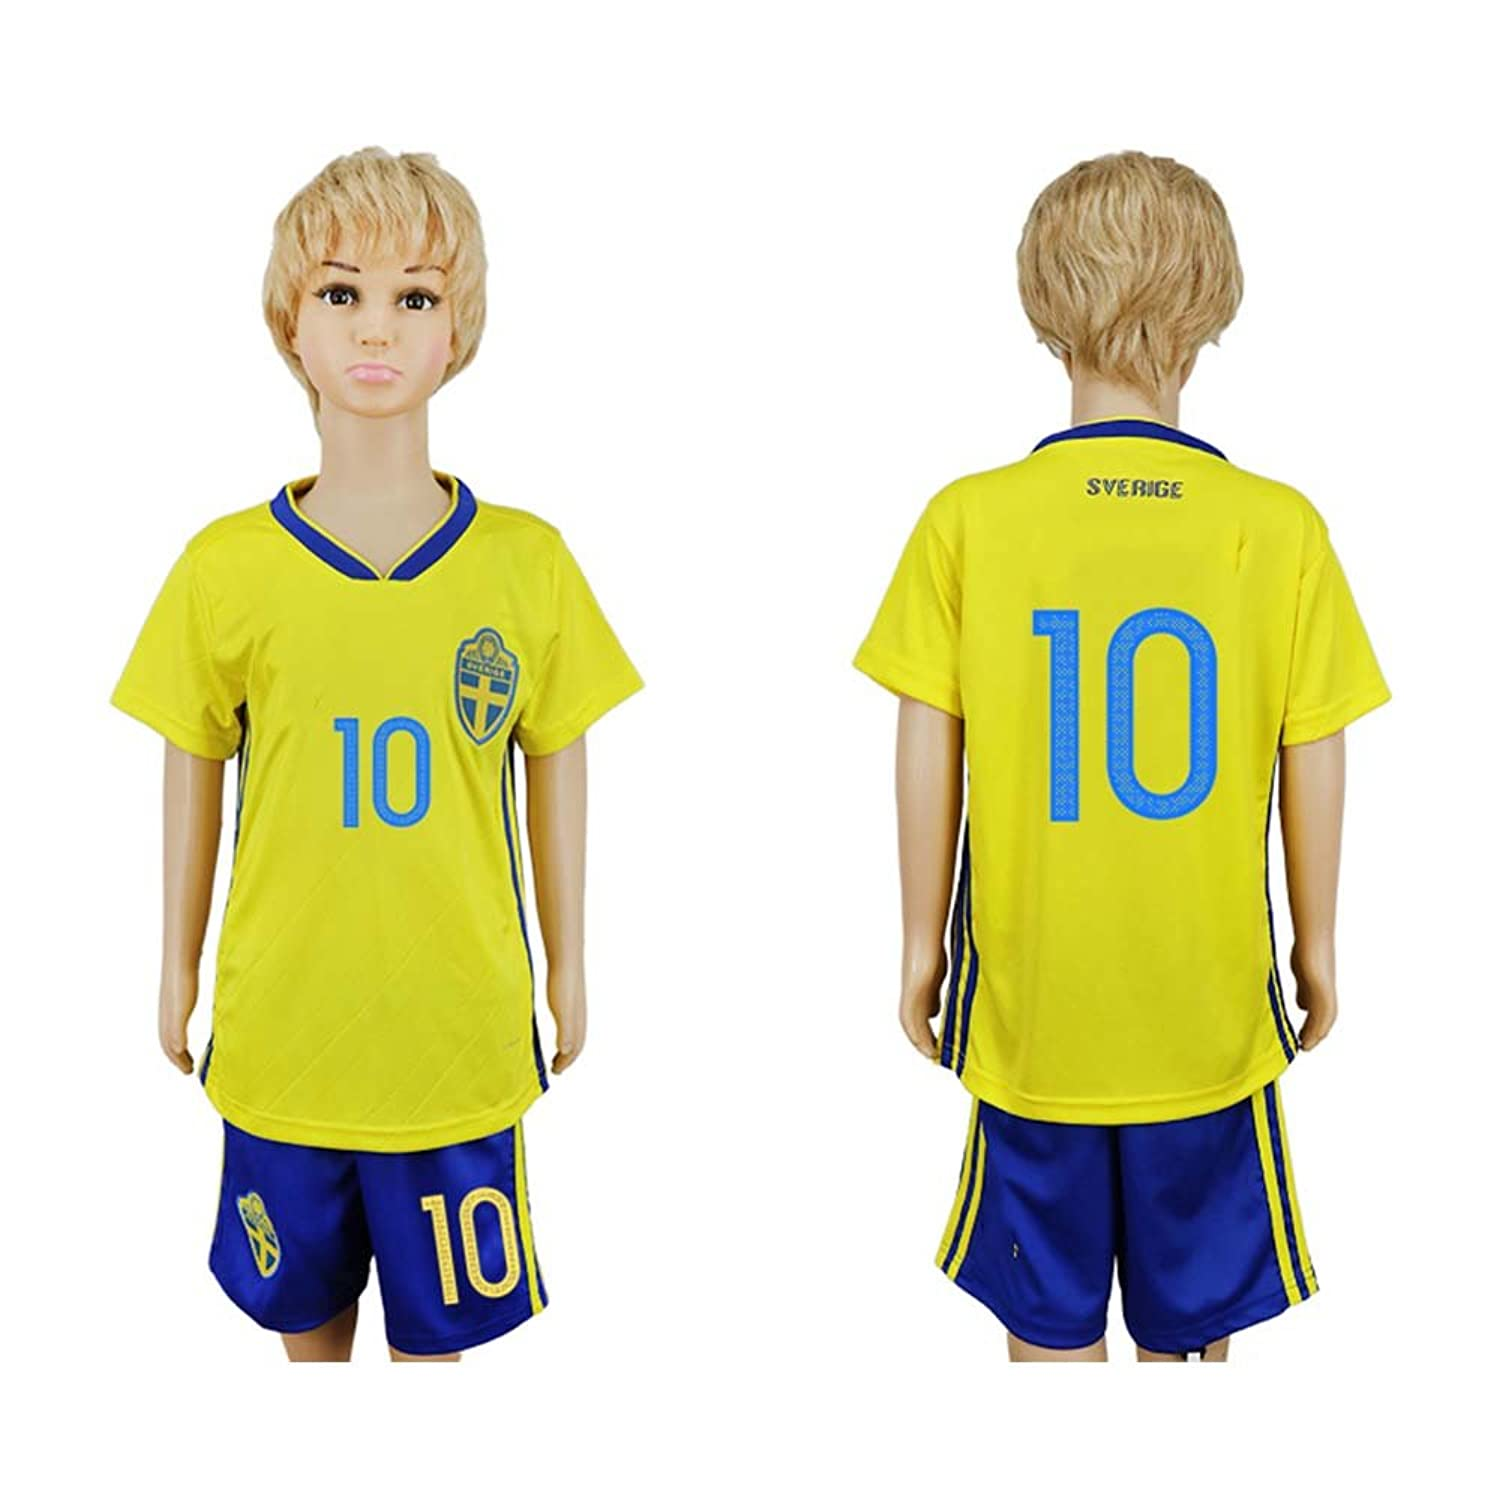 Puizozi SHIRT ボーイズ B07D3LKZ7H 18# (4 to 5 Years Old)